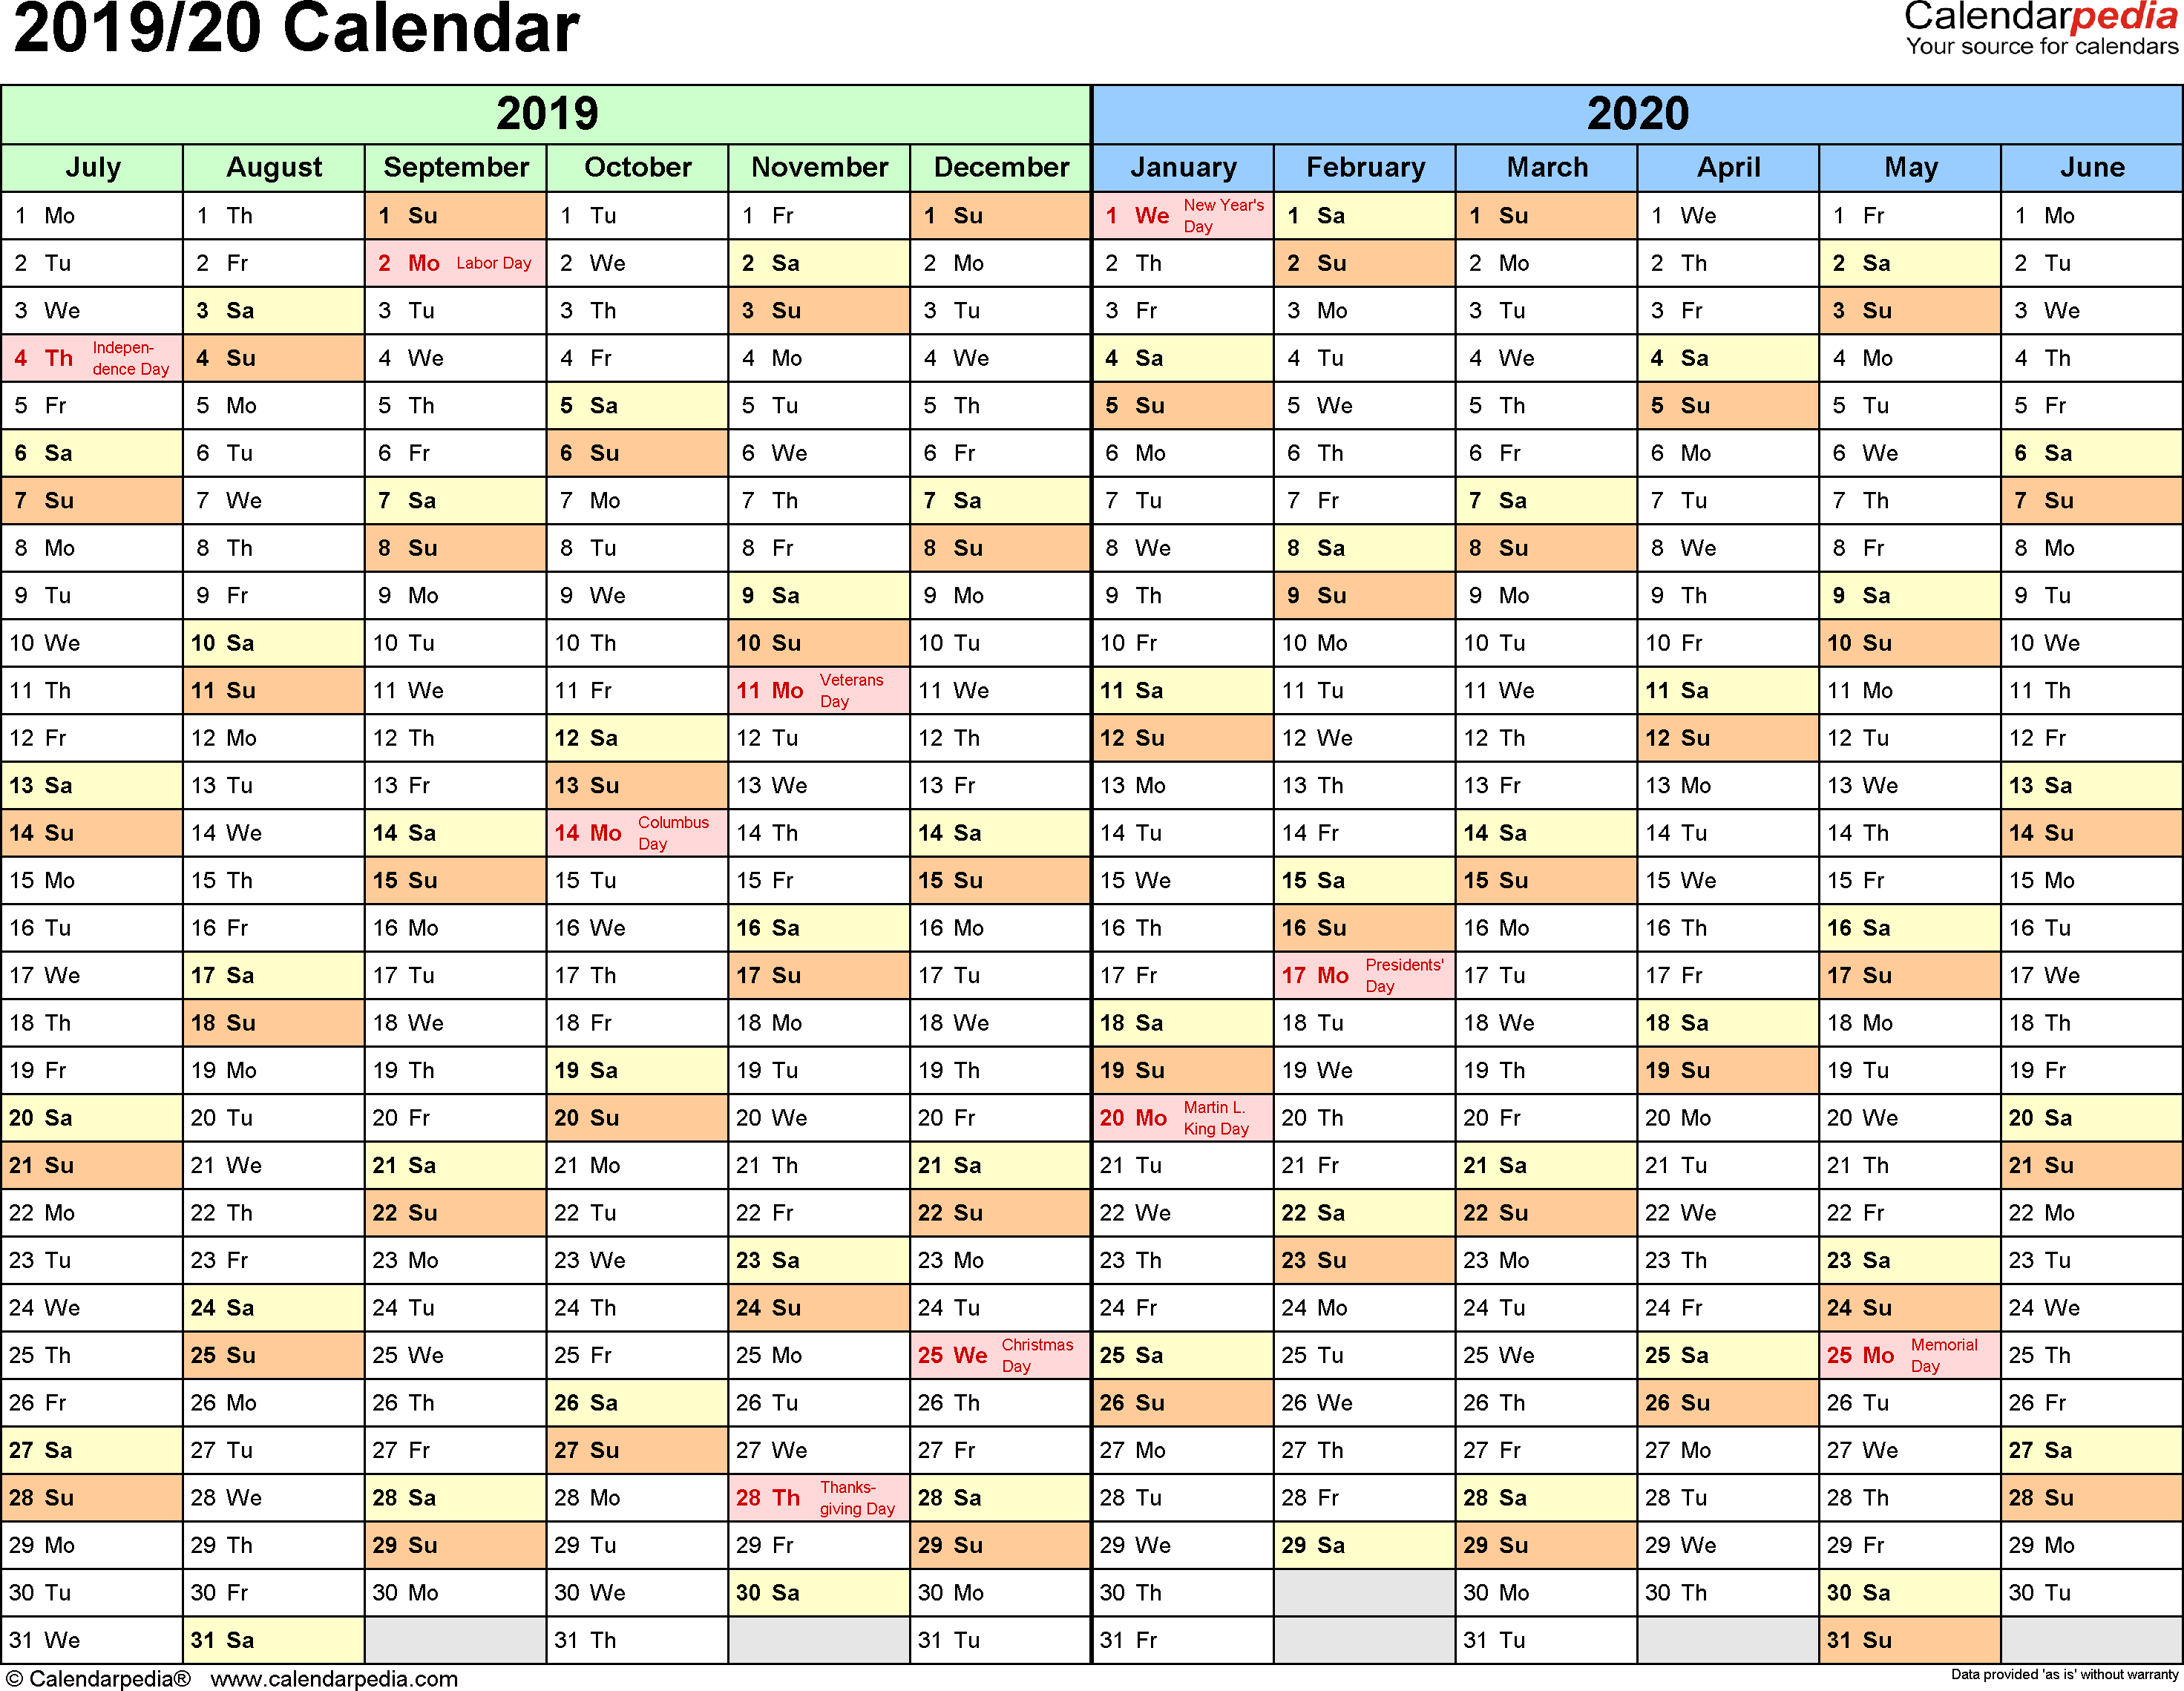 Year 2019 Calendar Template With Split 20 July To June Excel Templates